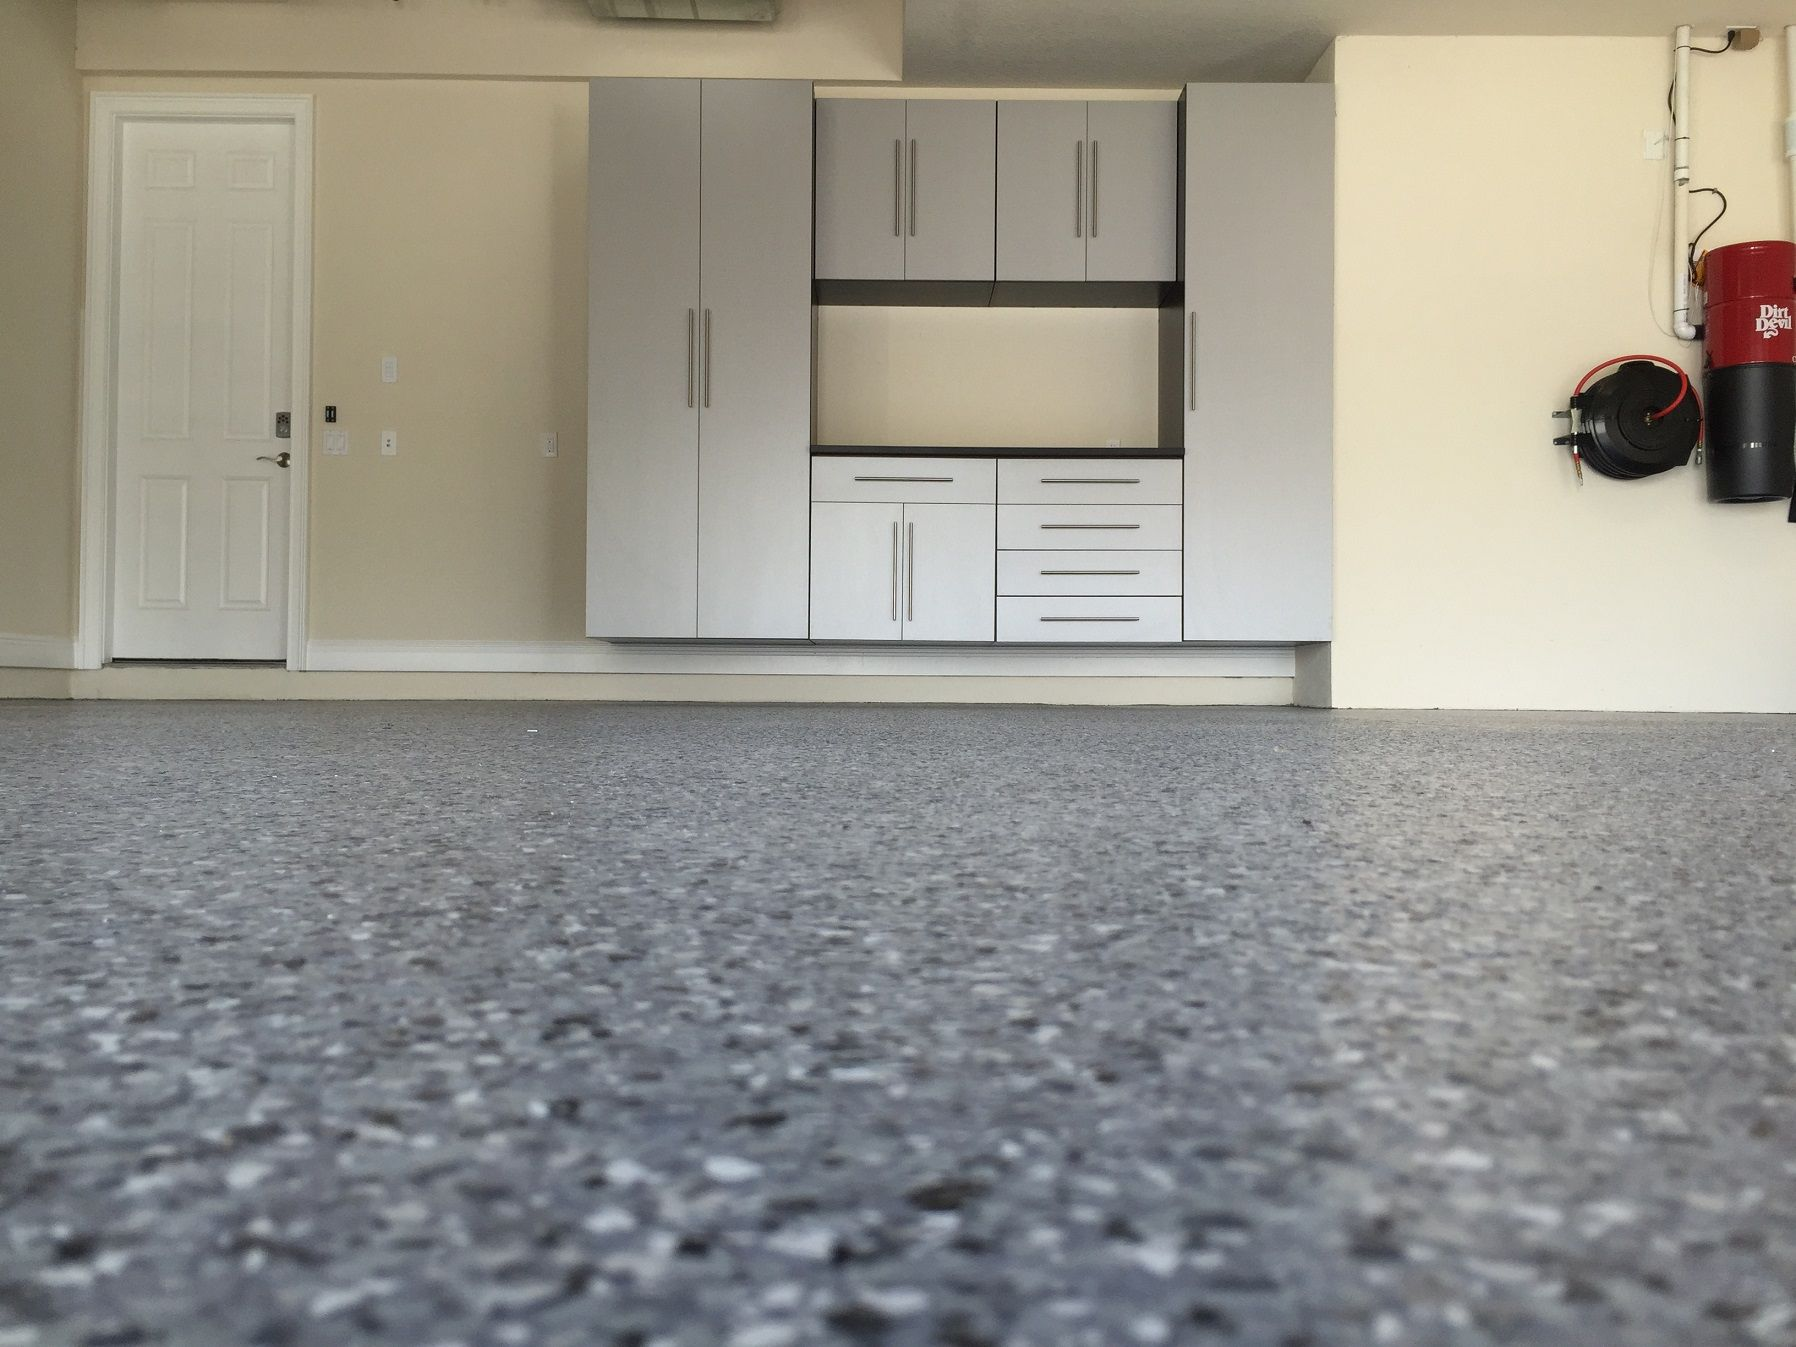 8 Easy And Affordable Garage Floor Options Garageworkshopflooringideas Garage Floor Flooring Options Diy For Kids